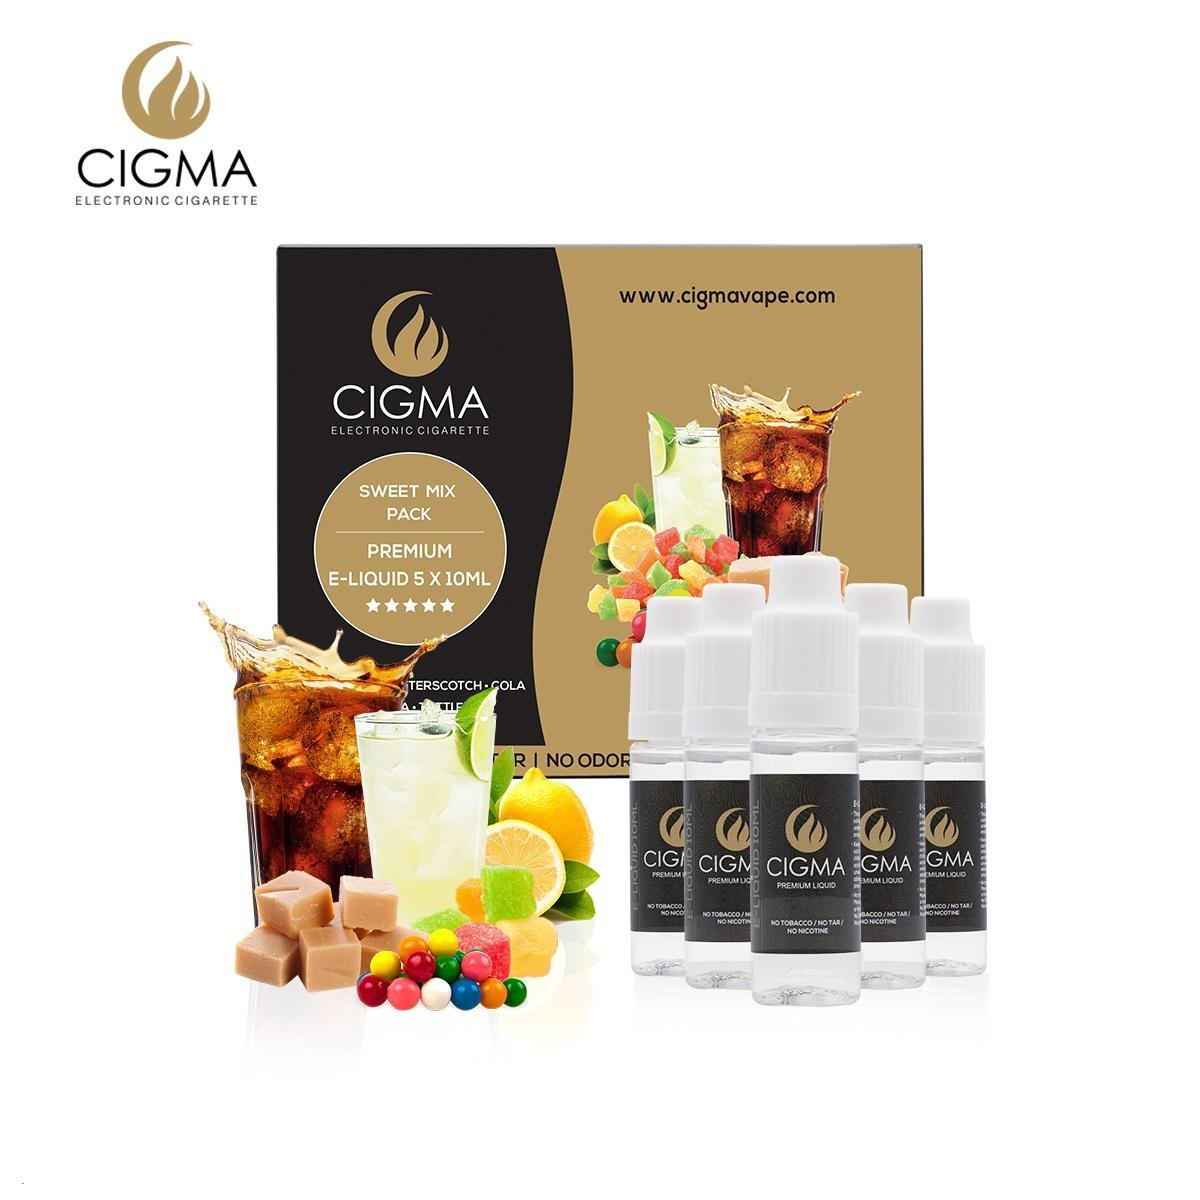 CIGMA 5 X 10ml E Liquid Sweet Mix NUEVOS SABORES | Bubble Gum | Tutti-Frutti | Soda de limón | Butterscotch | Cola | Ingredientes de alto grado | VG & PG ...